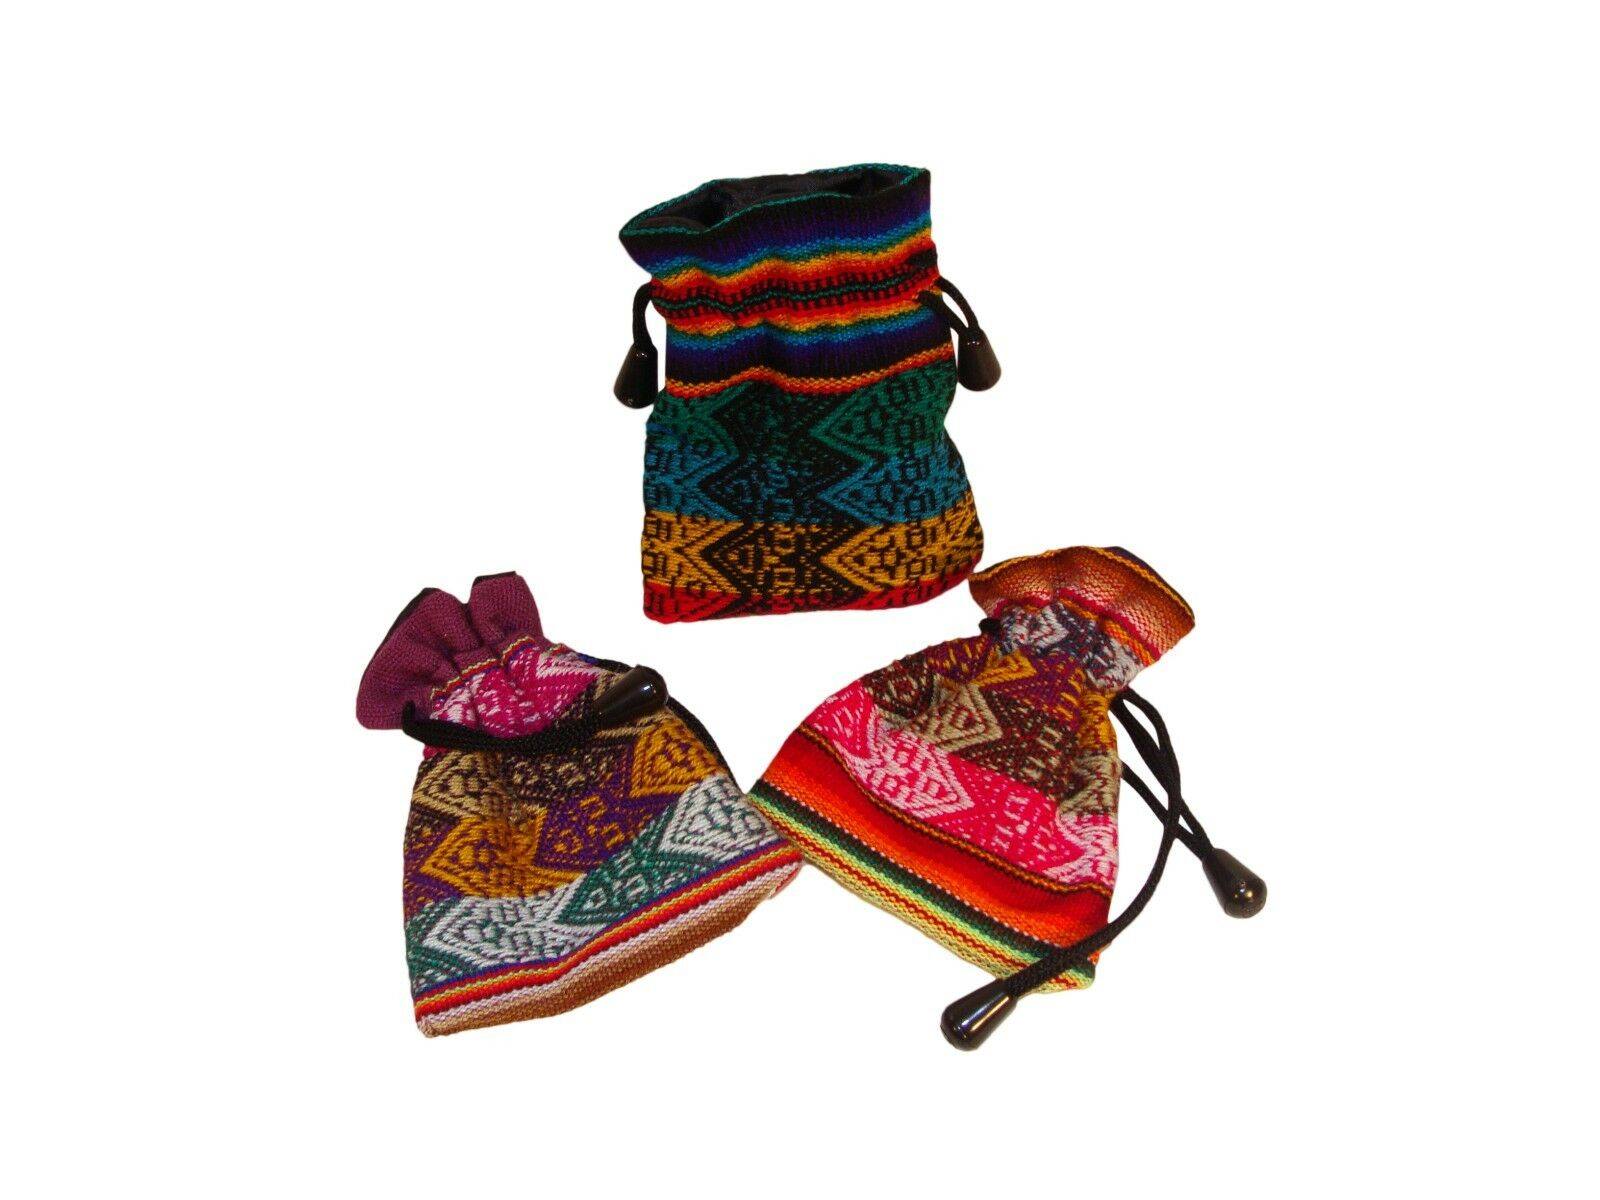 Six Bag with Drawstring /& Cord 5 X 3 Peruvian Woven Fabric Gift Pouch 6